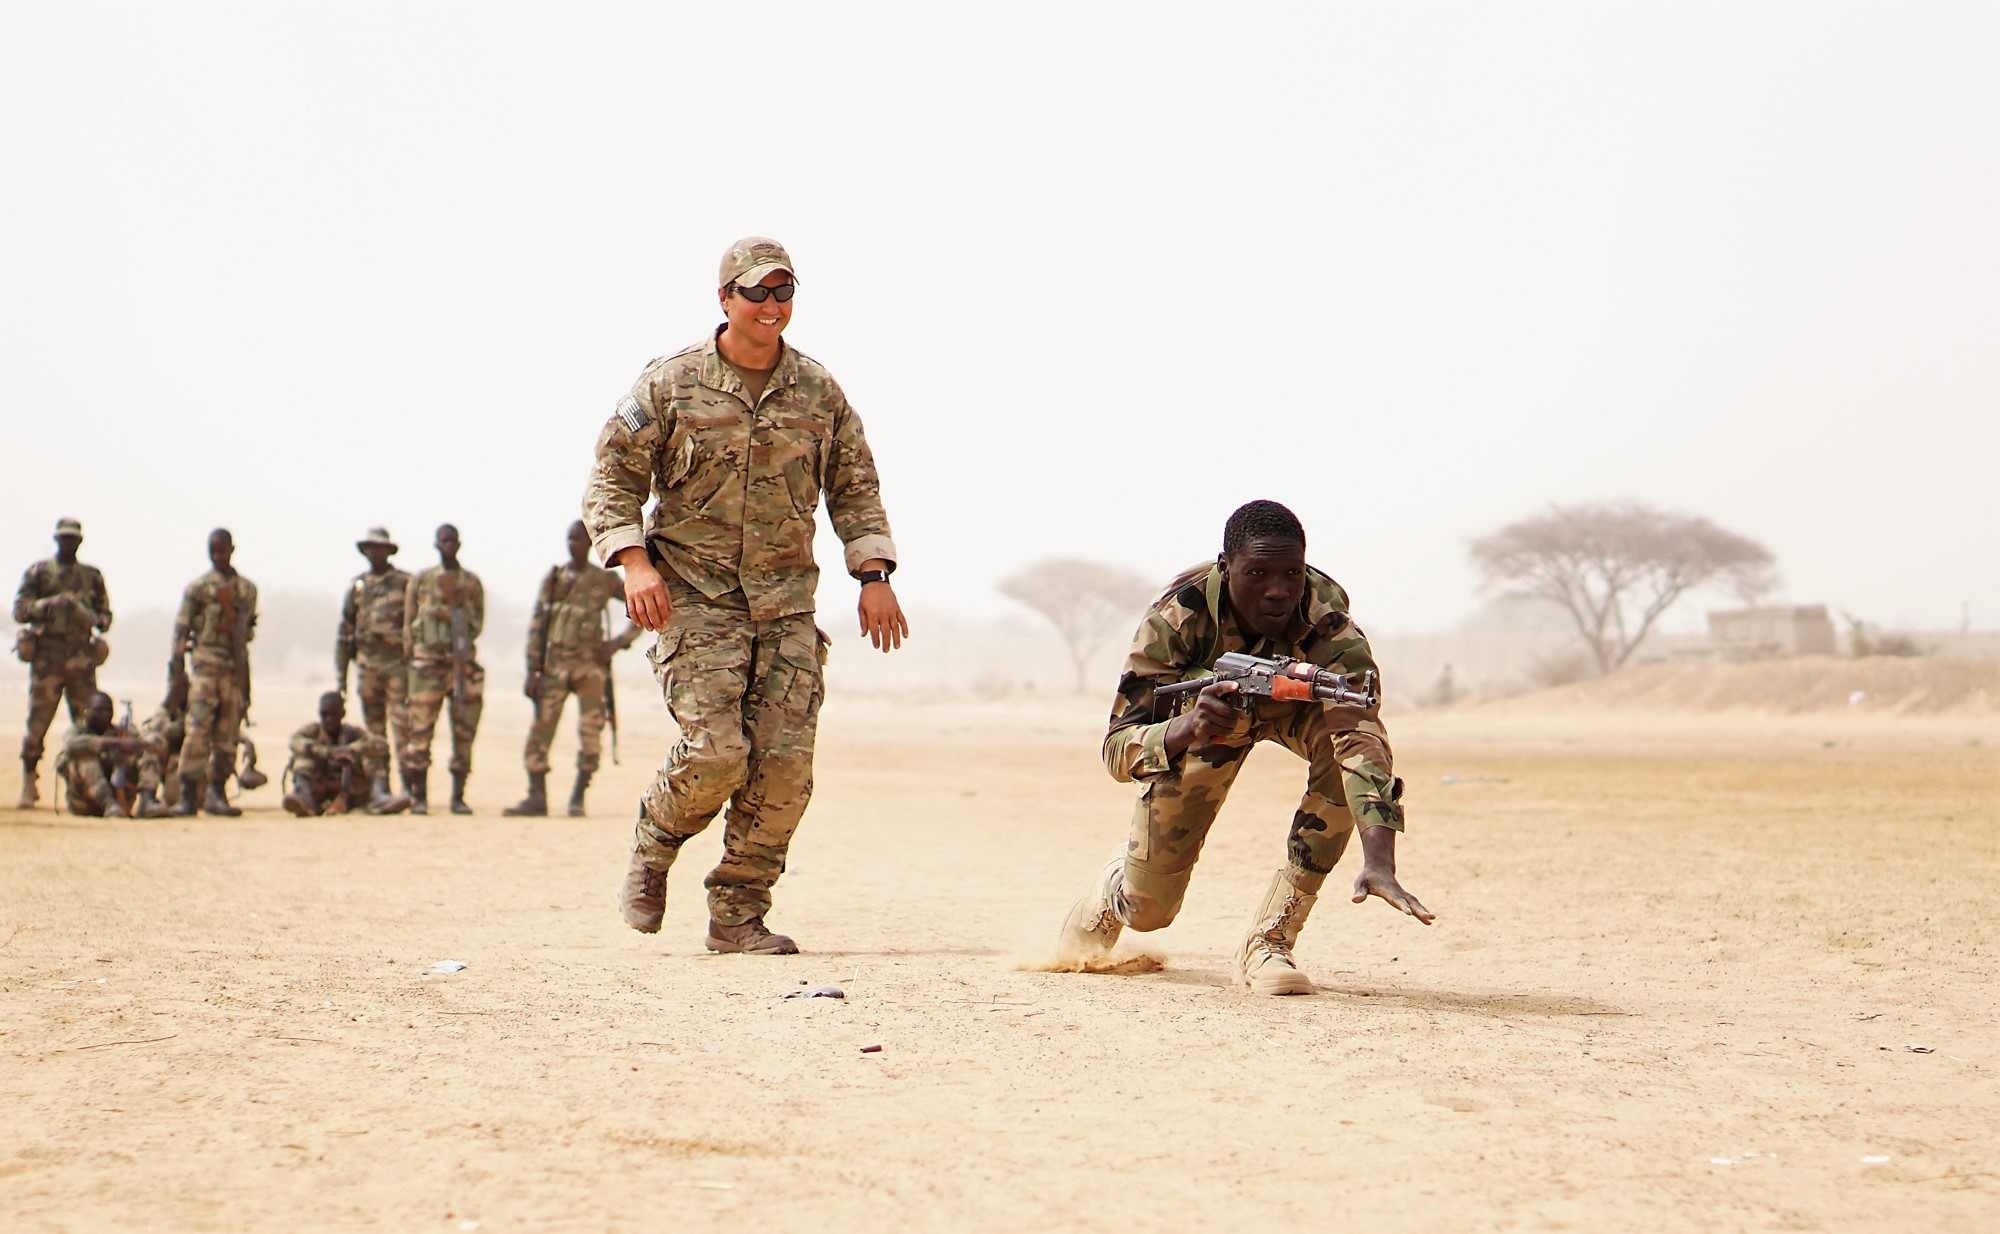 A U.S. Army Special Forces weapons sergeant observes as a Nigerien soldier bounds forward while practicing buddy team movement drills during Exercise Flintlock 2017 in Diffa, Niger, March 11, 2017. Flintlock is a Special Operations Forces exercise geared toward building interoperability between African and western partner nations. (U.S. Army photo by Spc. Zayid Ballesteros/Released)